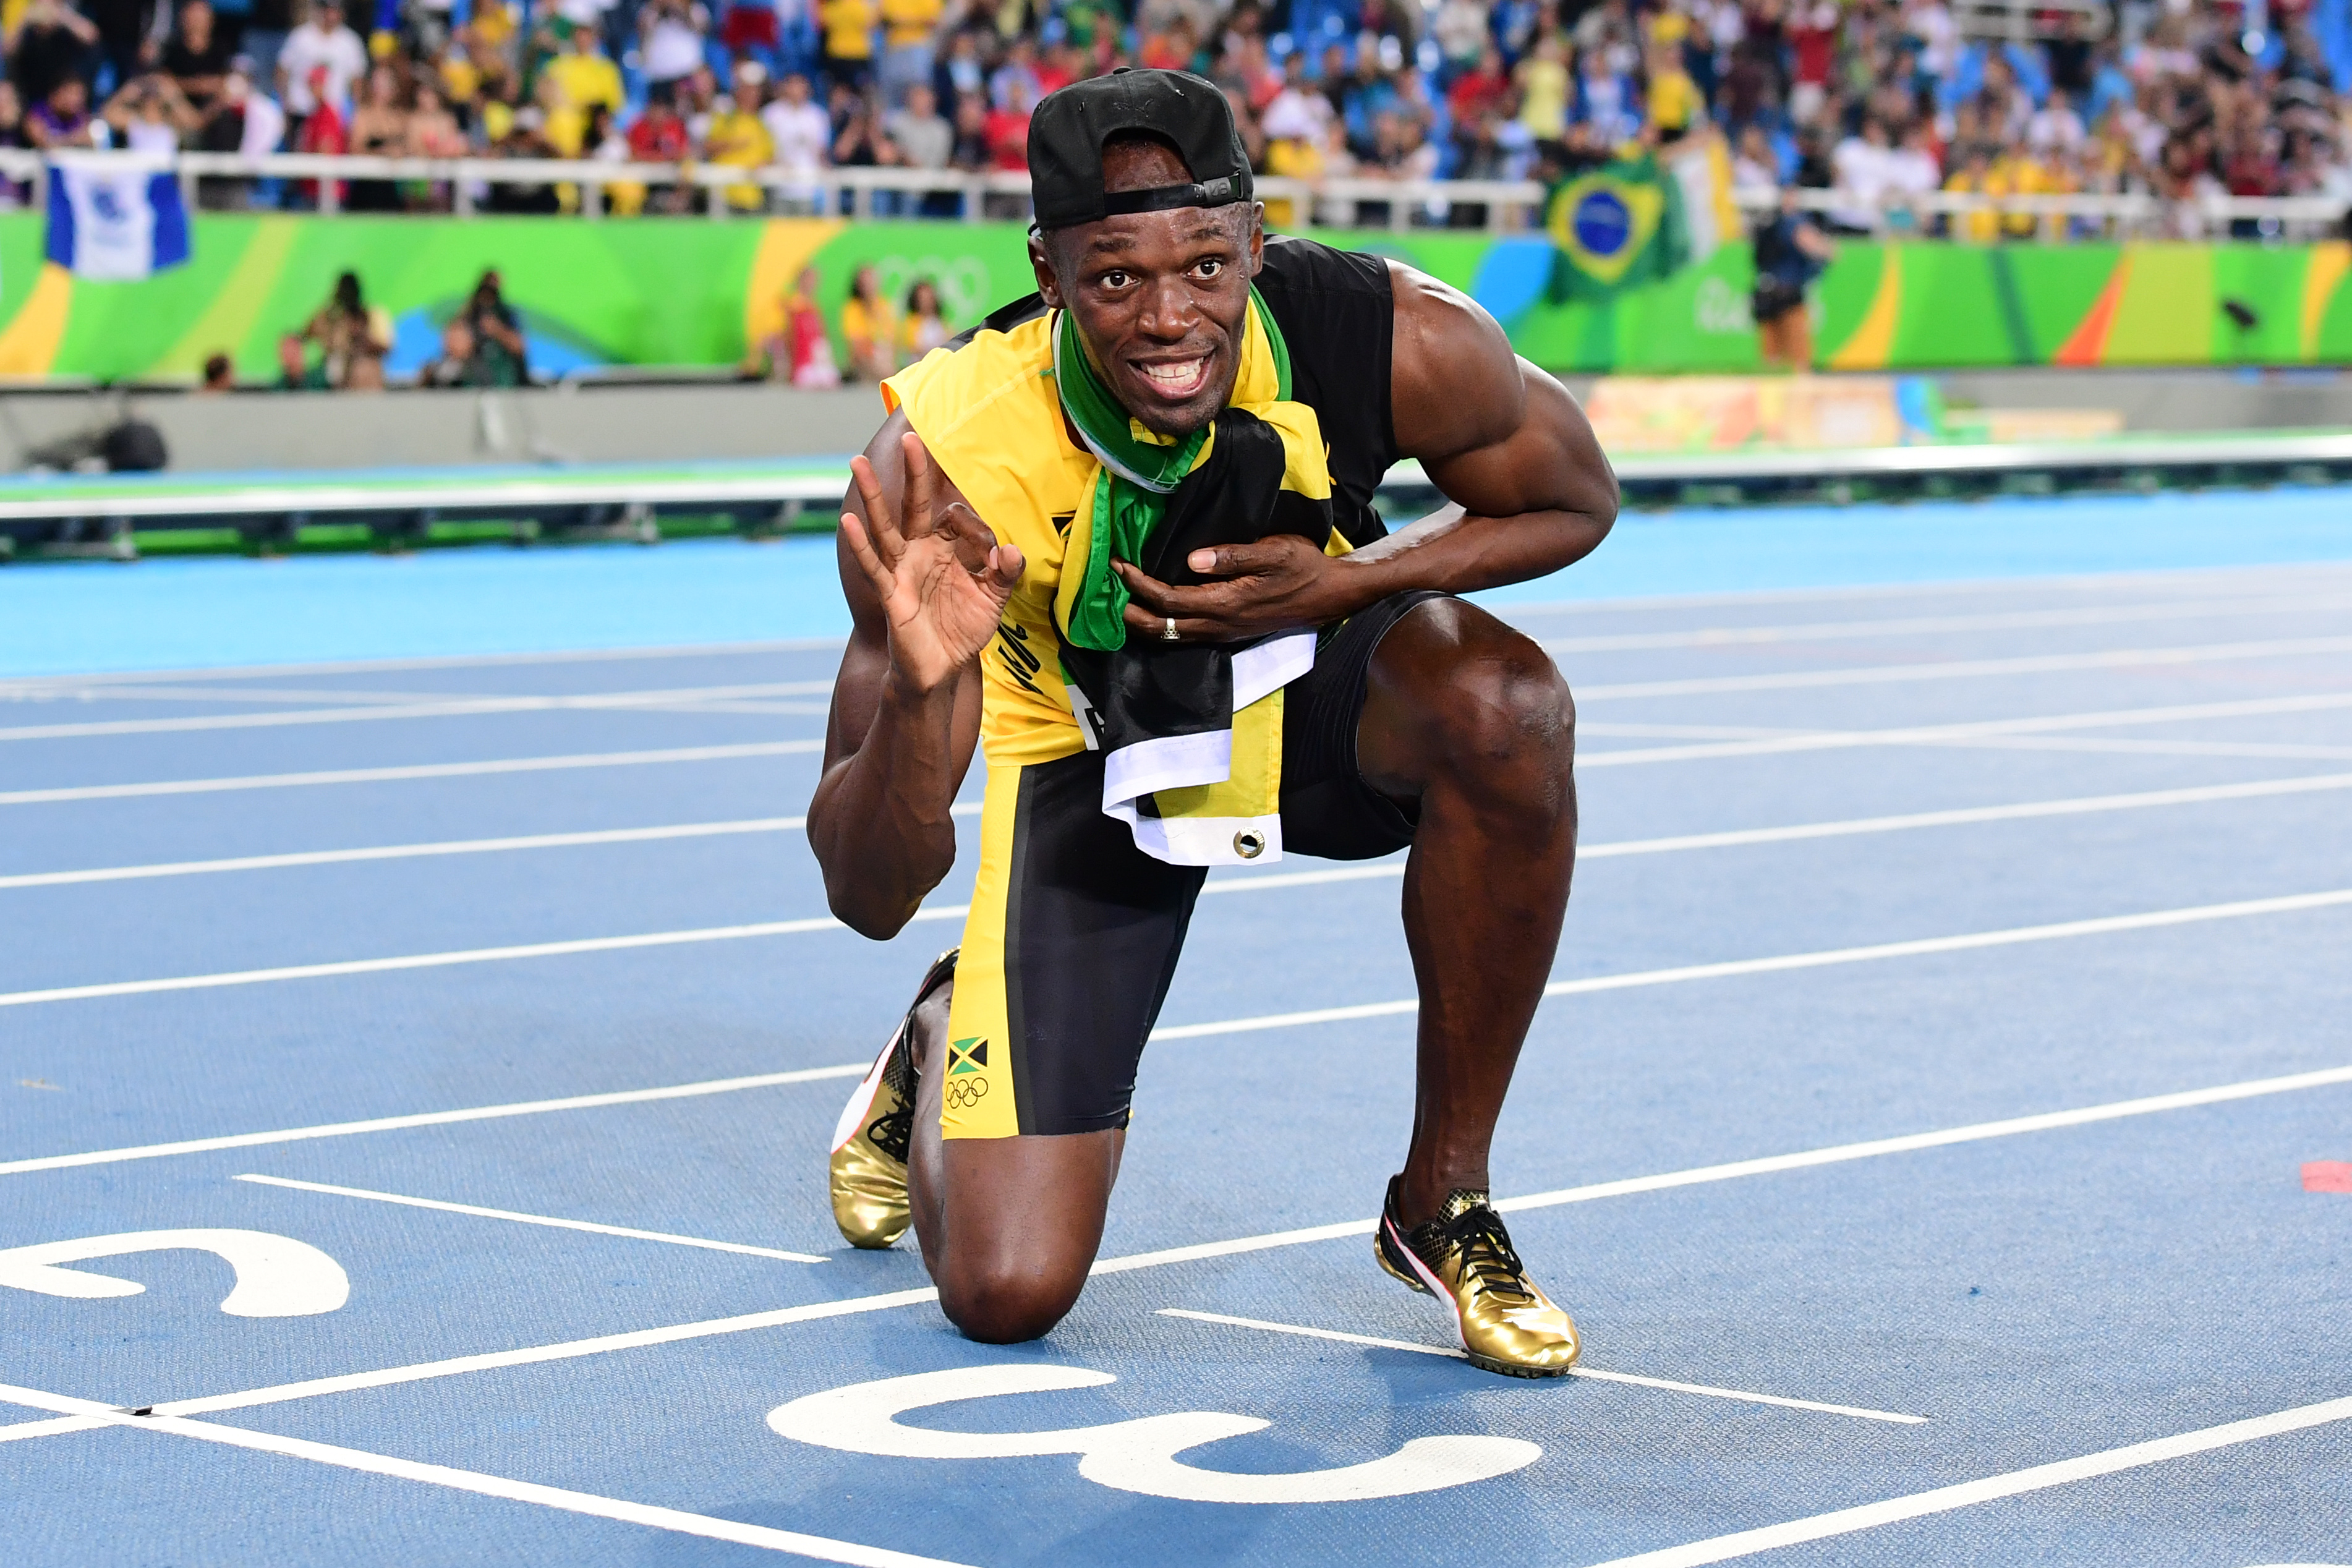 Jamaica's Usain Bolt holds up three fingers for a third relay Olympic title after Team Jamaica won the Men's 4x100m Relay Final during the athletics event at the Rio 2016 Olympic Games at the Olympic Stadium in Rio de Janeiro on August 19, 2016.